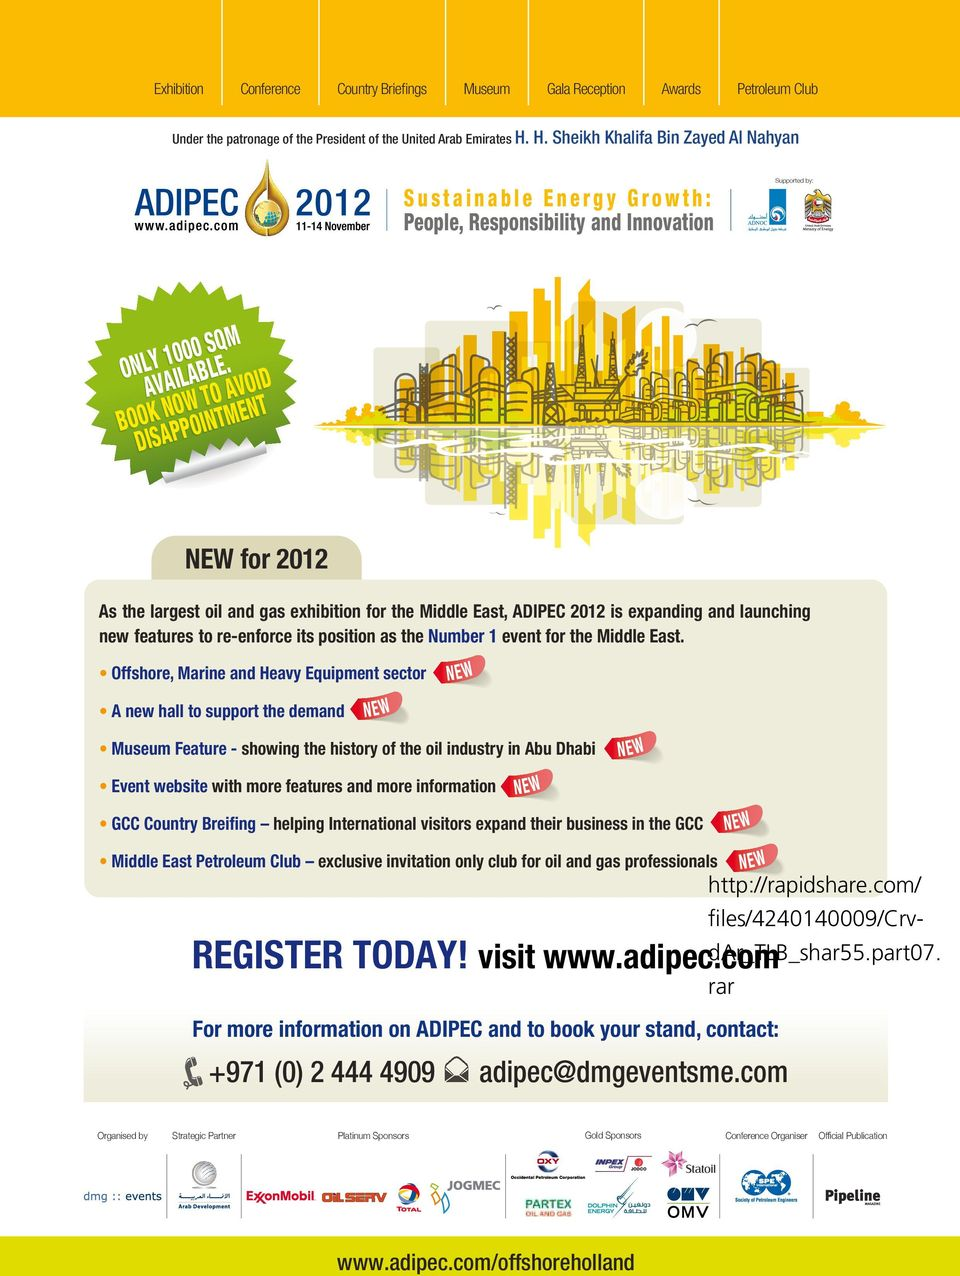 BOOK NOW TO AVOID DISAPPOINTMENT NEW for 2012 As the largest oil and gas exhibition for the Middle East, ADIPEC 2012 is expanding and launching new features to re-enforce its position as the Number 1